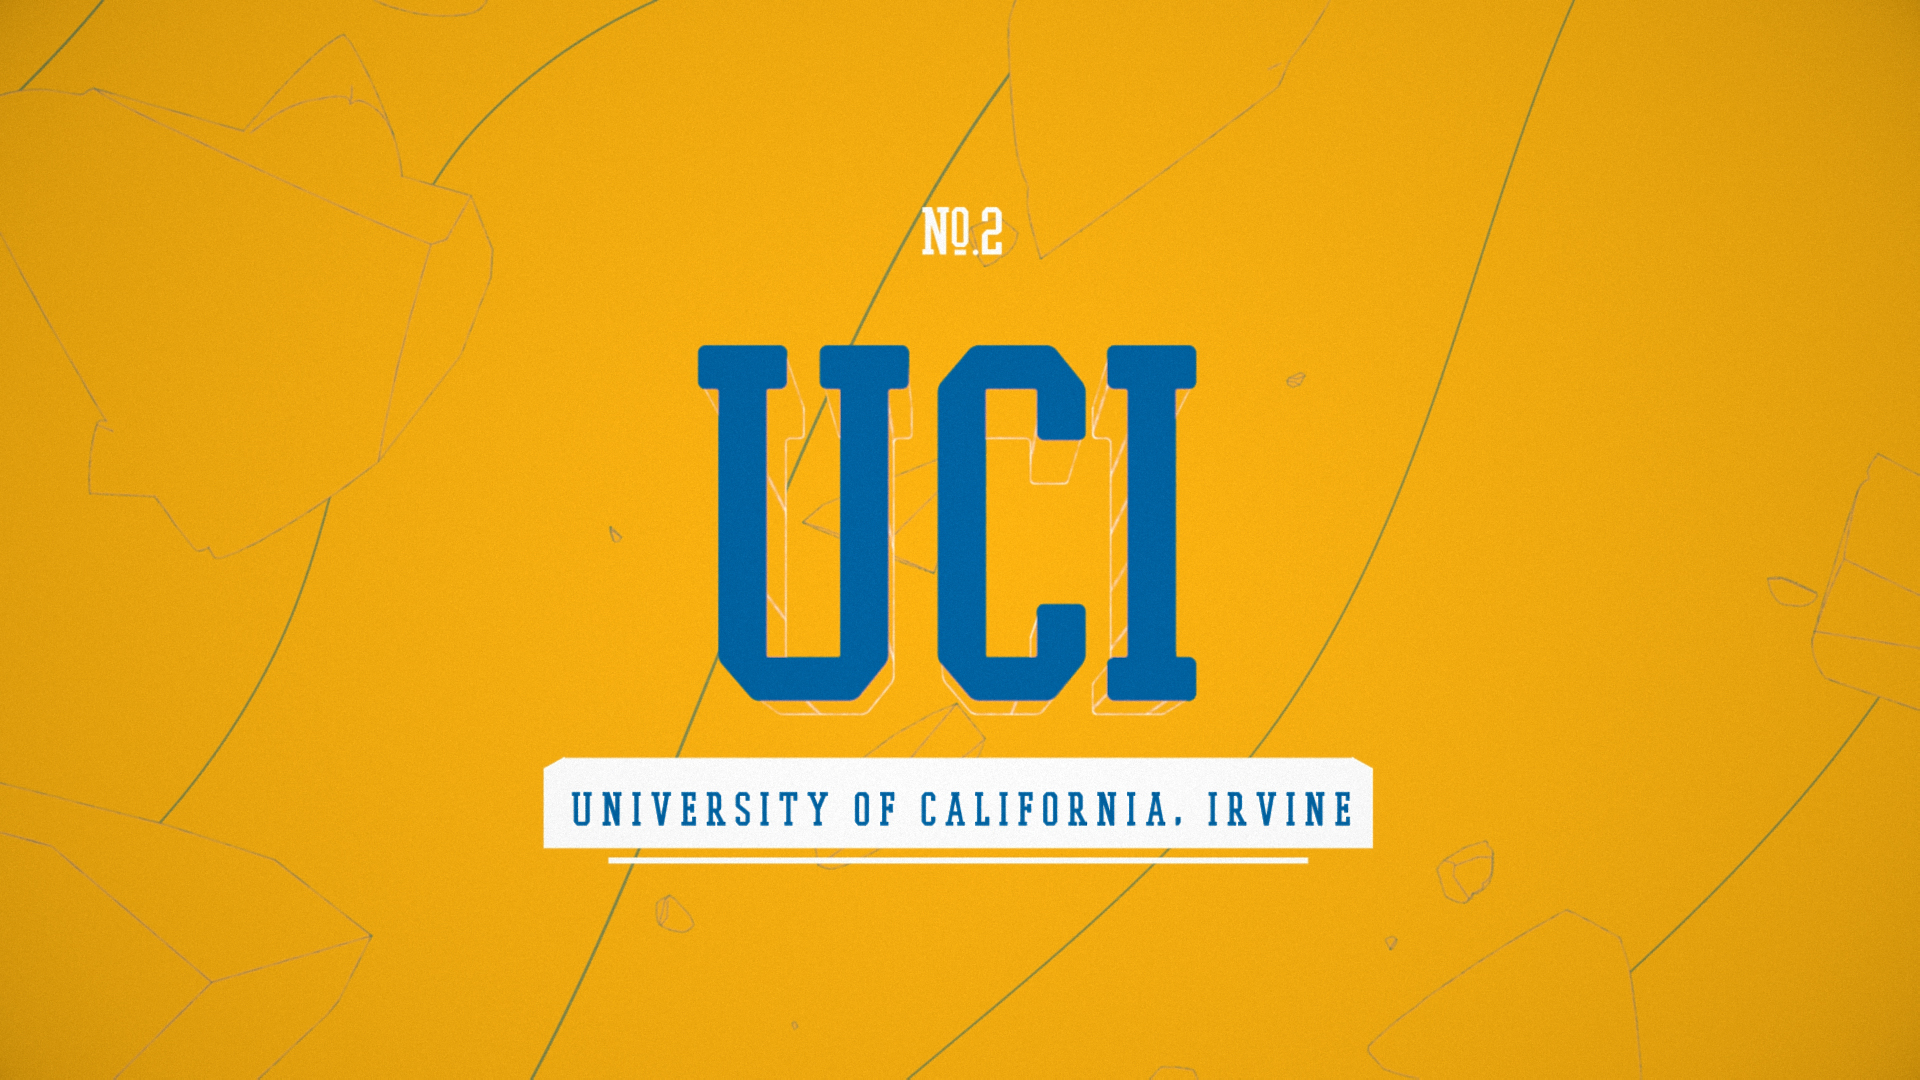 UCI_Letters.jpg